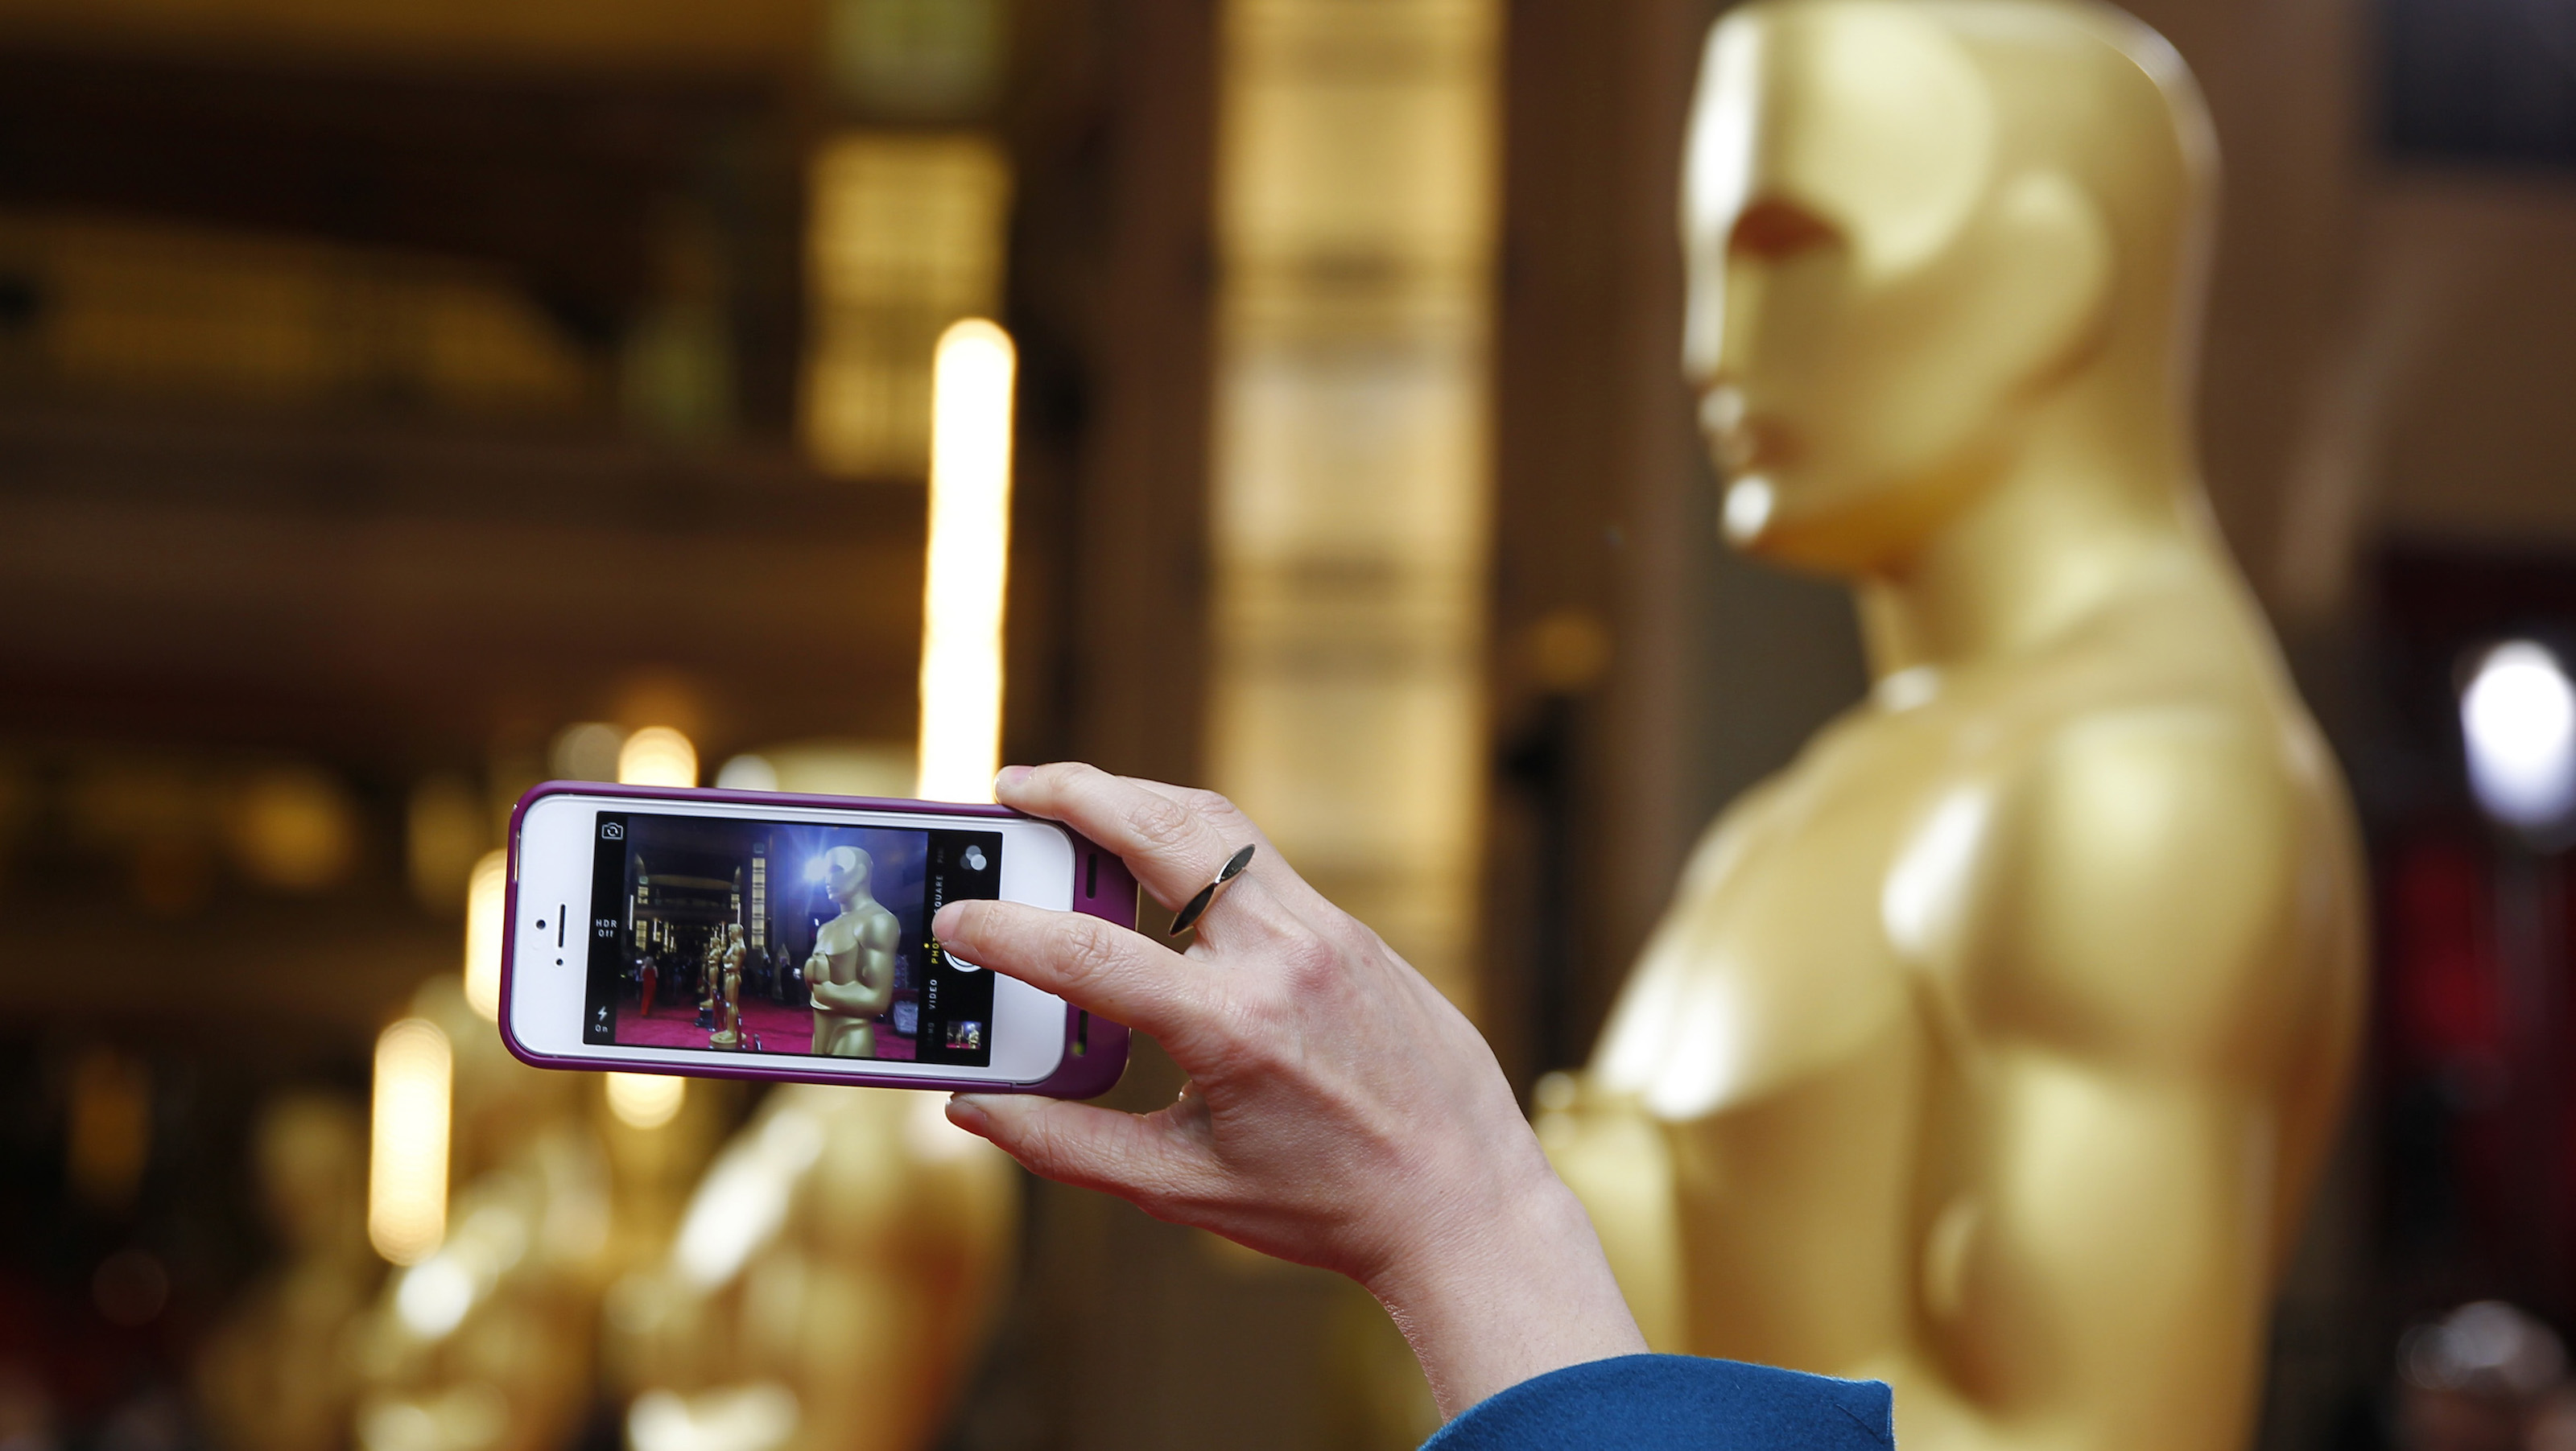 A person uses a phone to take a picture of an Oscars statue at the 86th Academy Awards in Hollywood, California March 2, 2014.  REUTERS/Mike Blake (UNITED STATES TAGS: ENTERTAINMENT) (OSCARS-ARRIVALS)   - RTR3FXA1